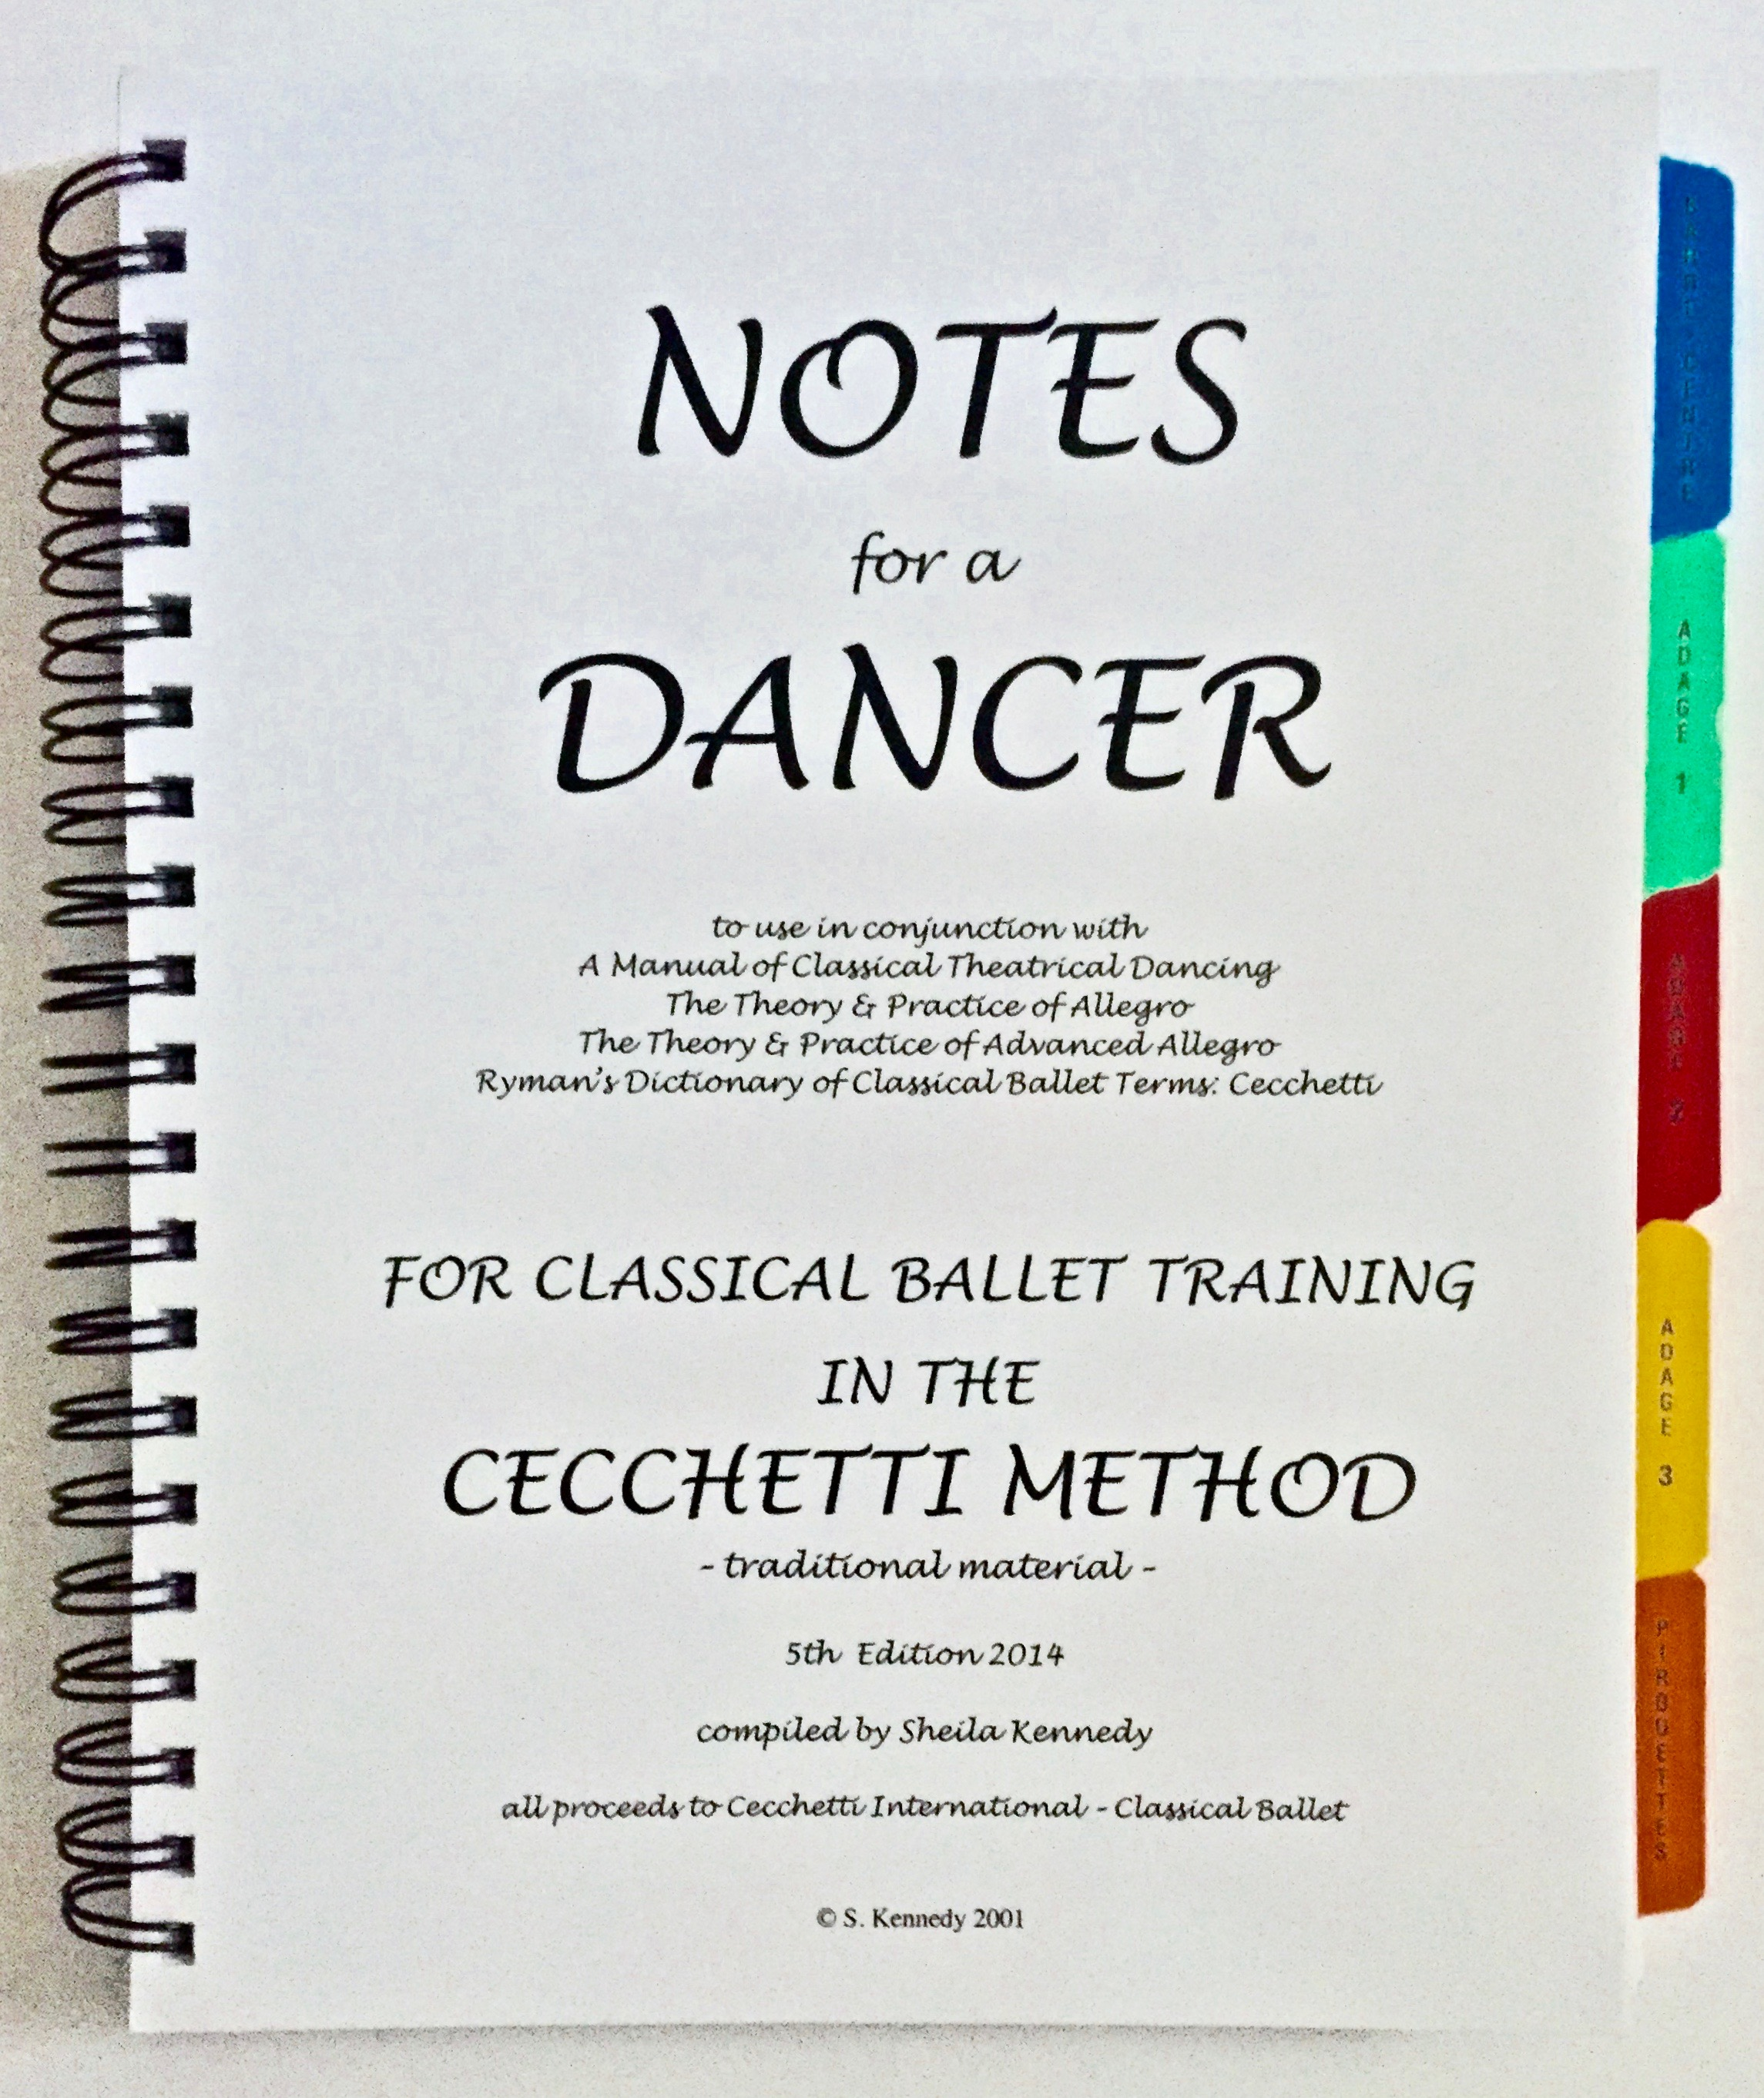 technical manual of classical ballet